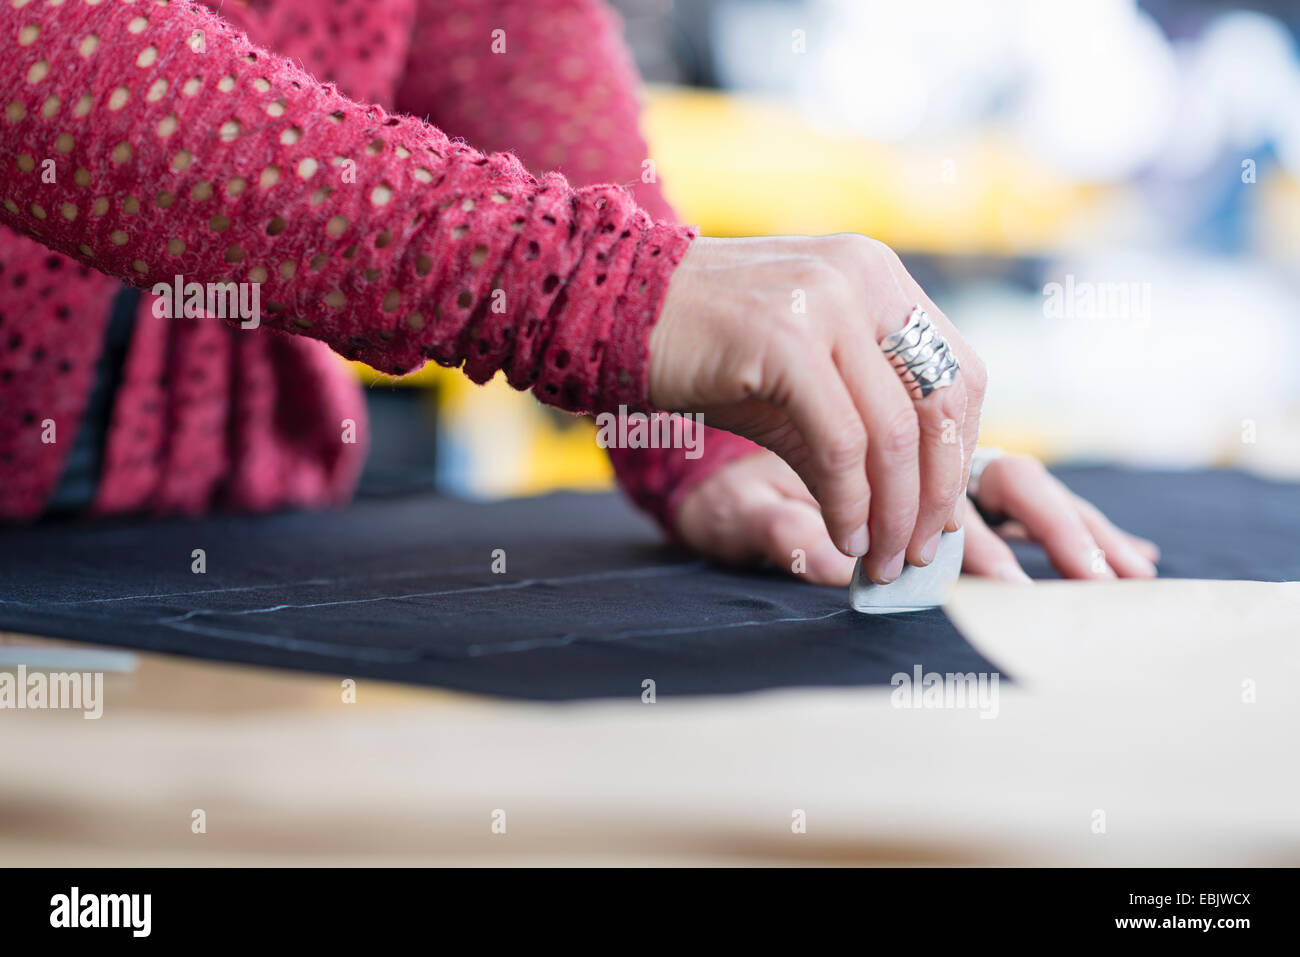 Hands of mature seamstress chalking outline onto textile on work table - Stock Image